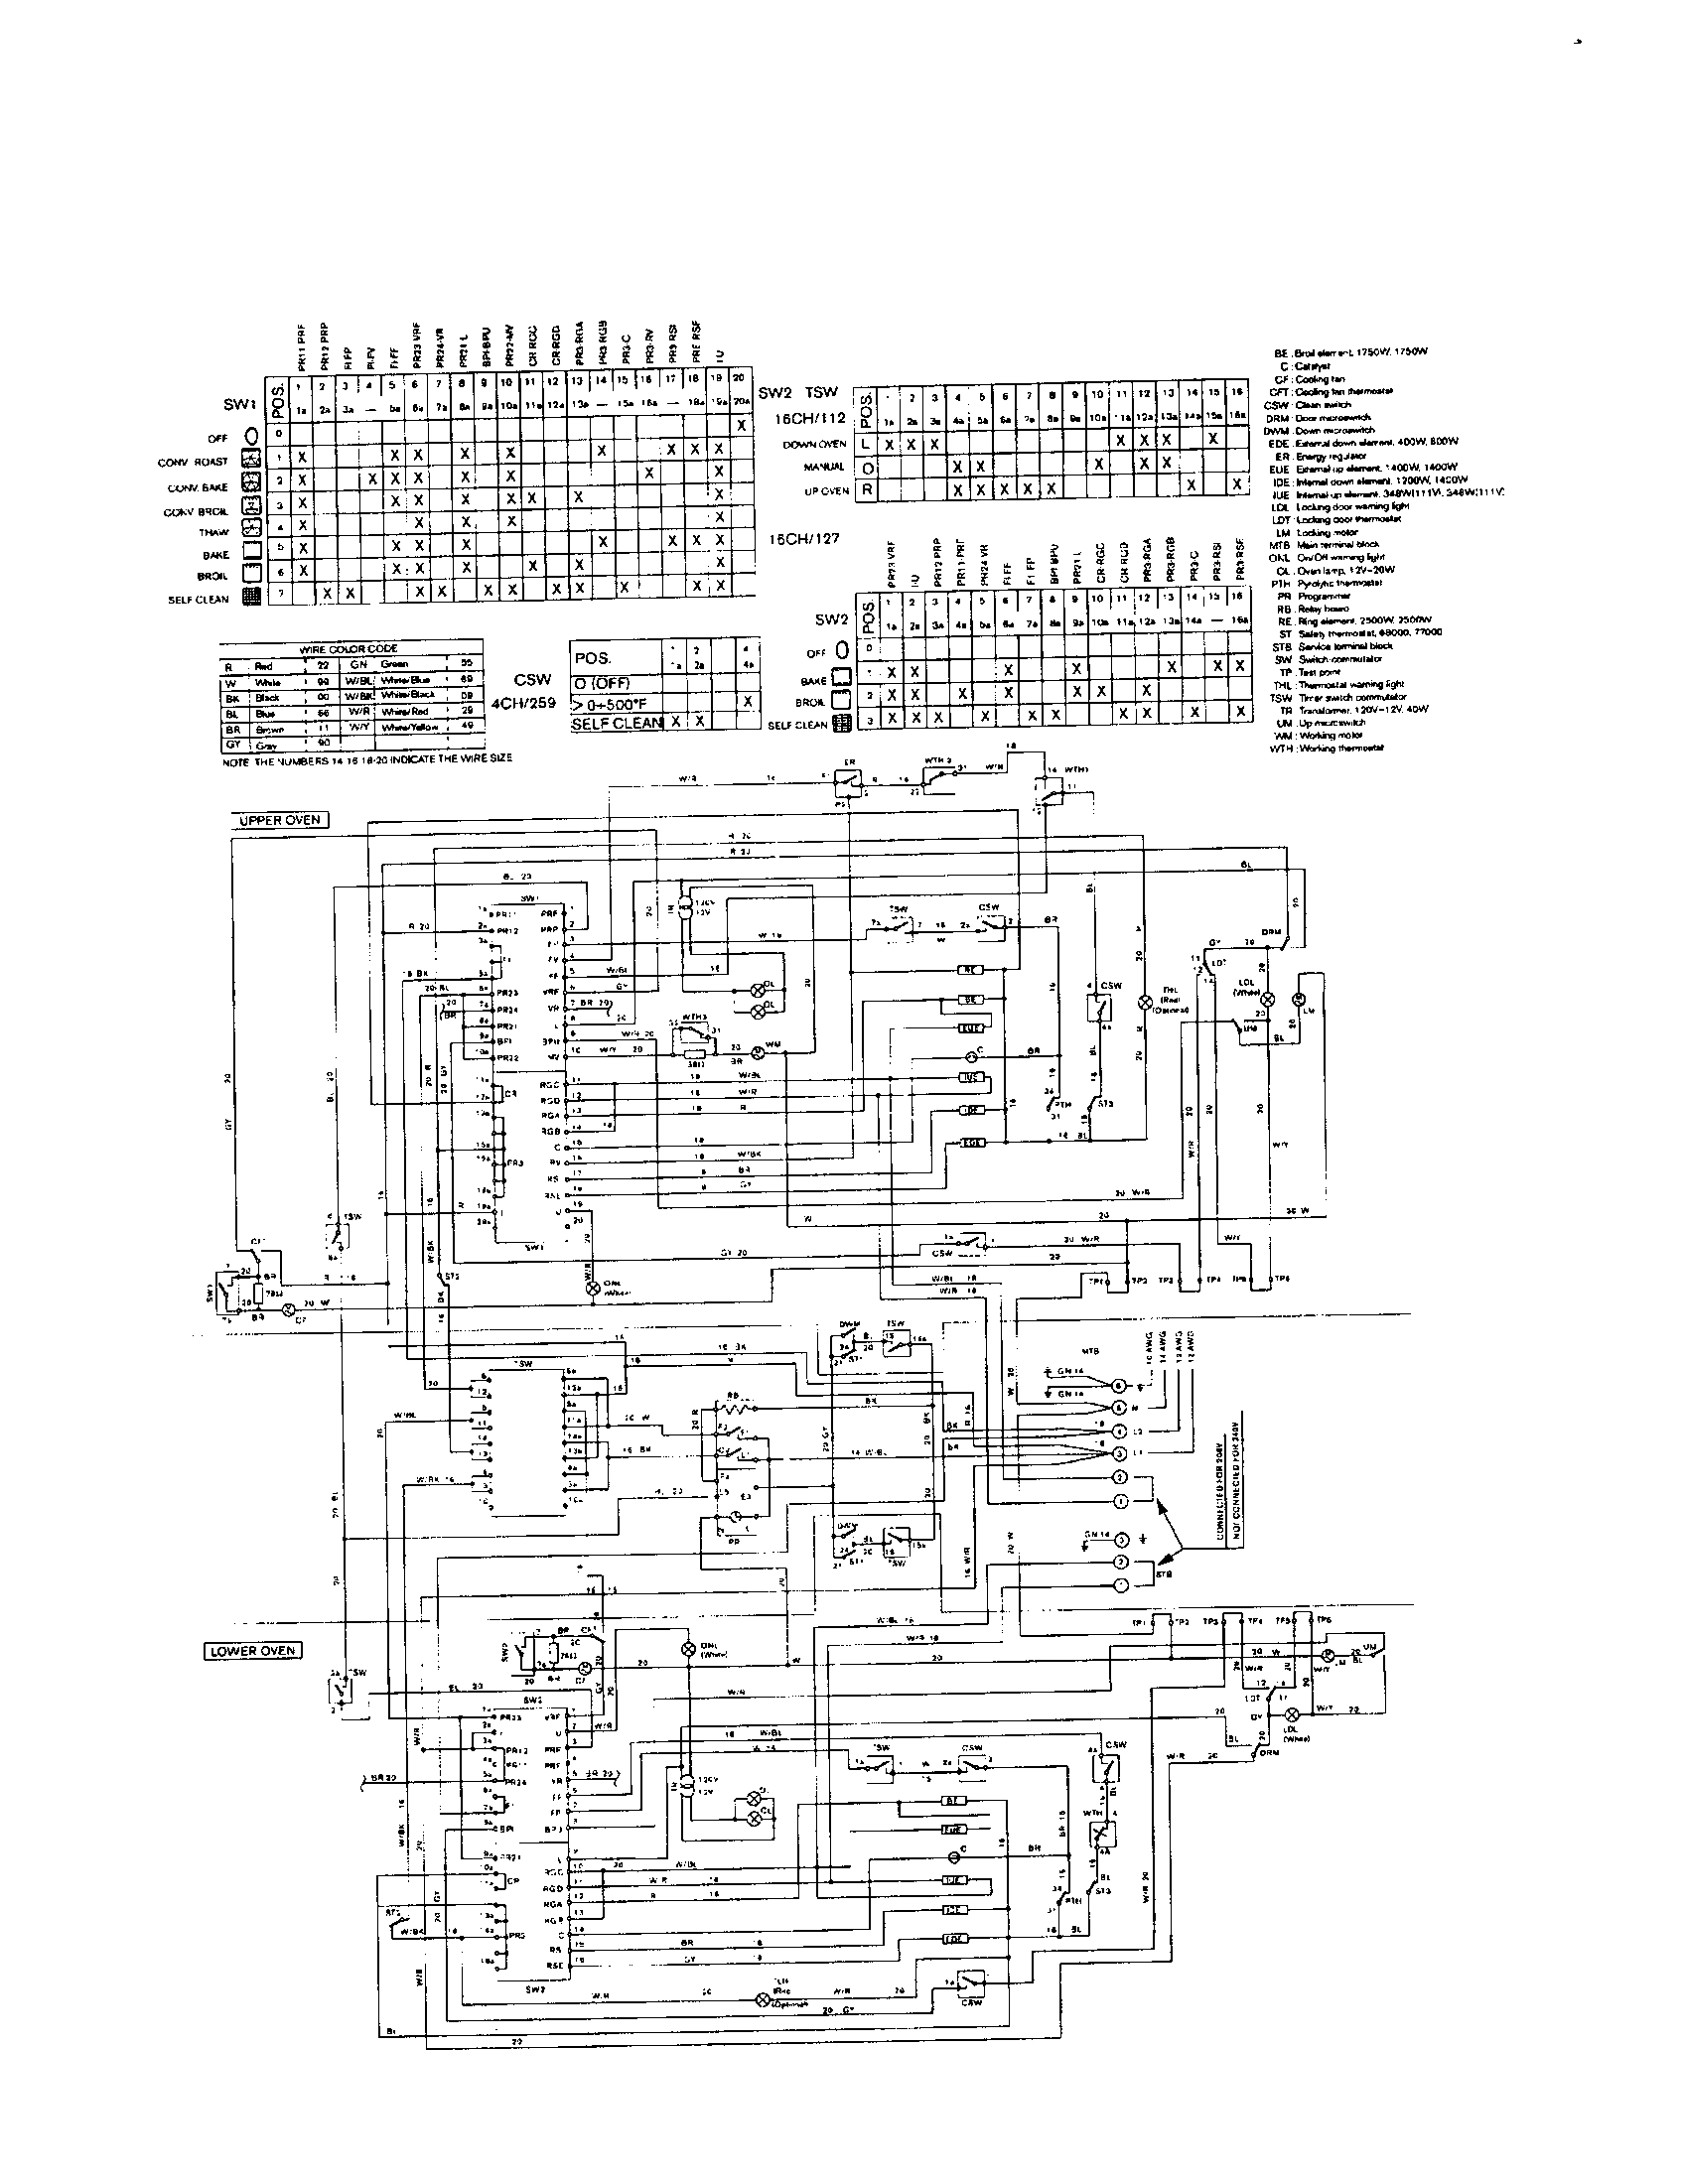 Nt 5705 Wiring Instructions For A Bosch Pke611c14d Ceramin Hob In The Schematic Wiring